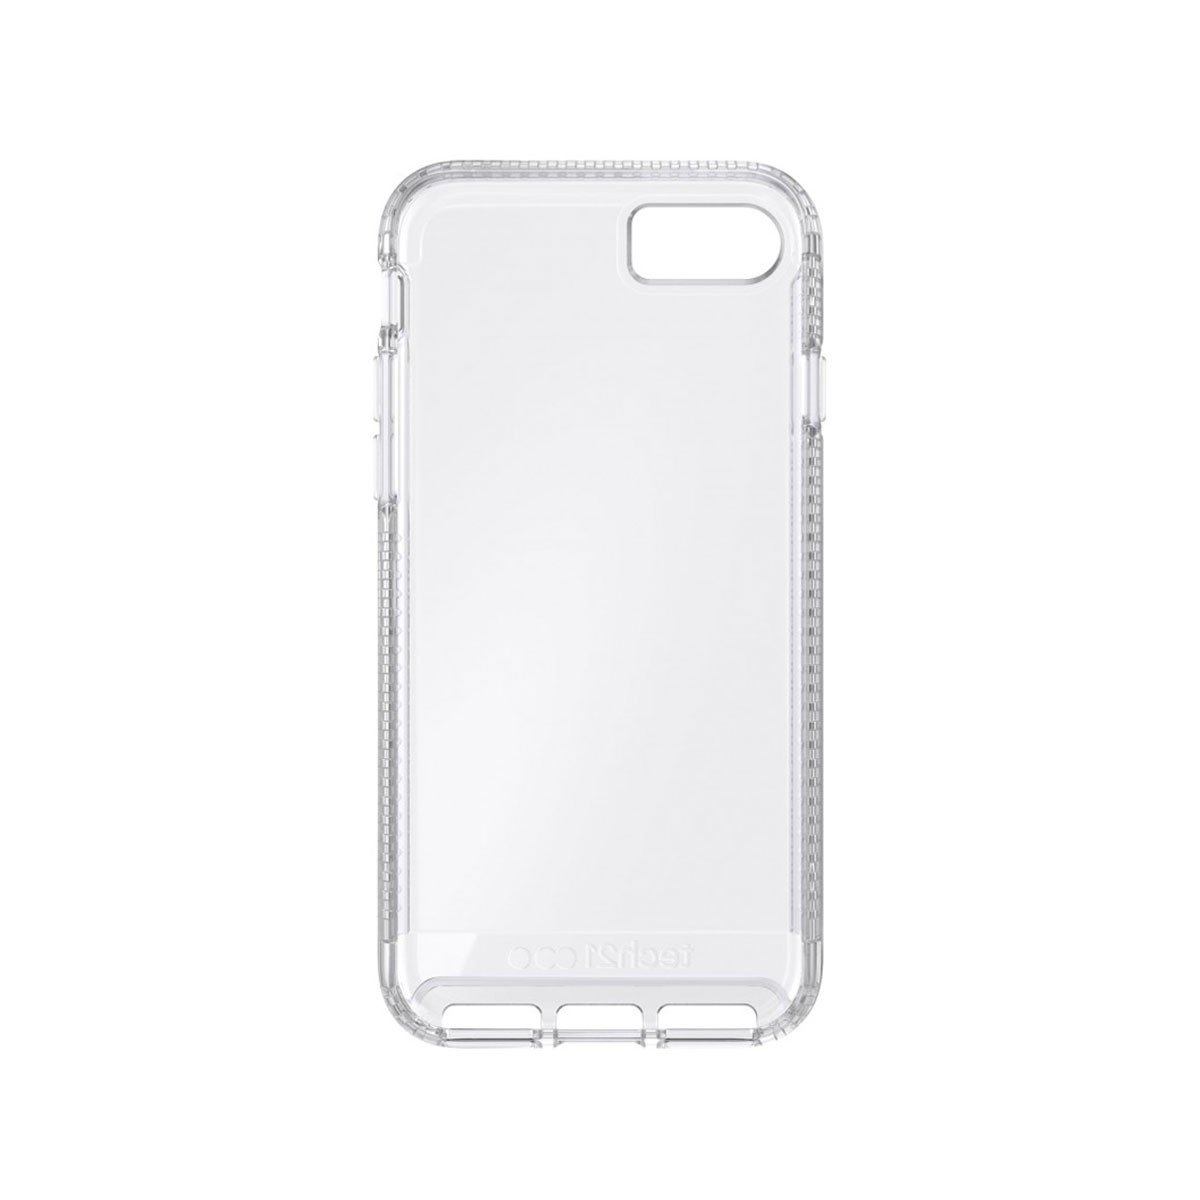 Tech21 Impact Clear Case iPhone 7